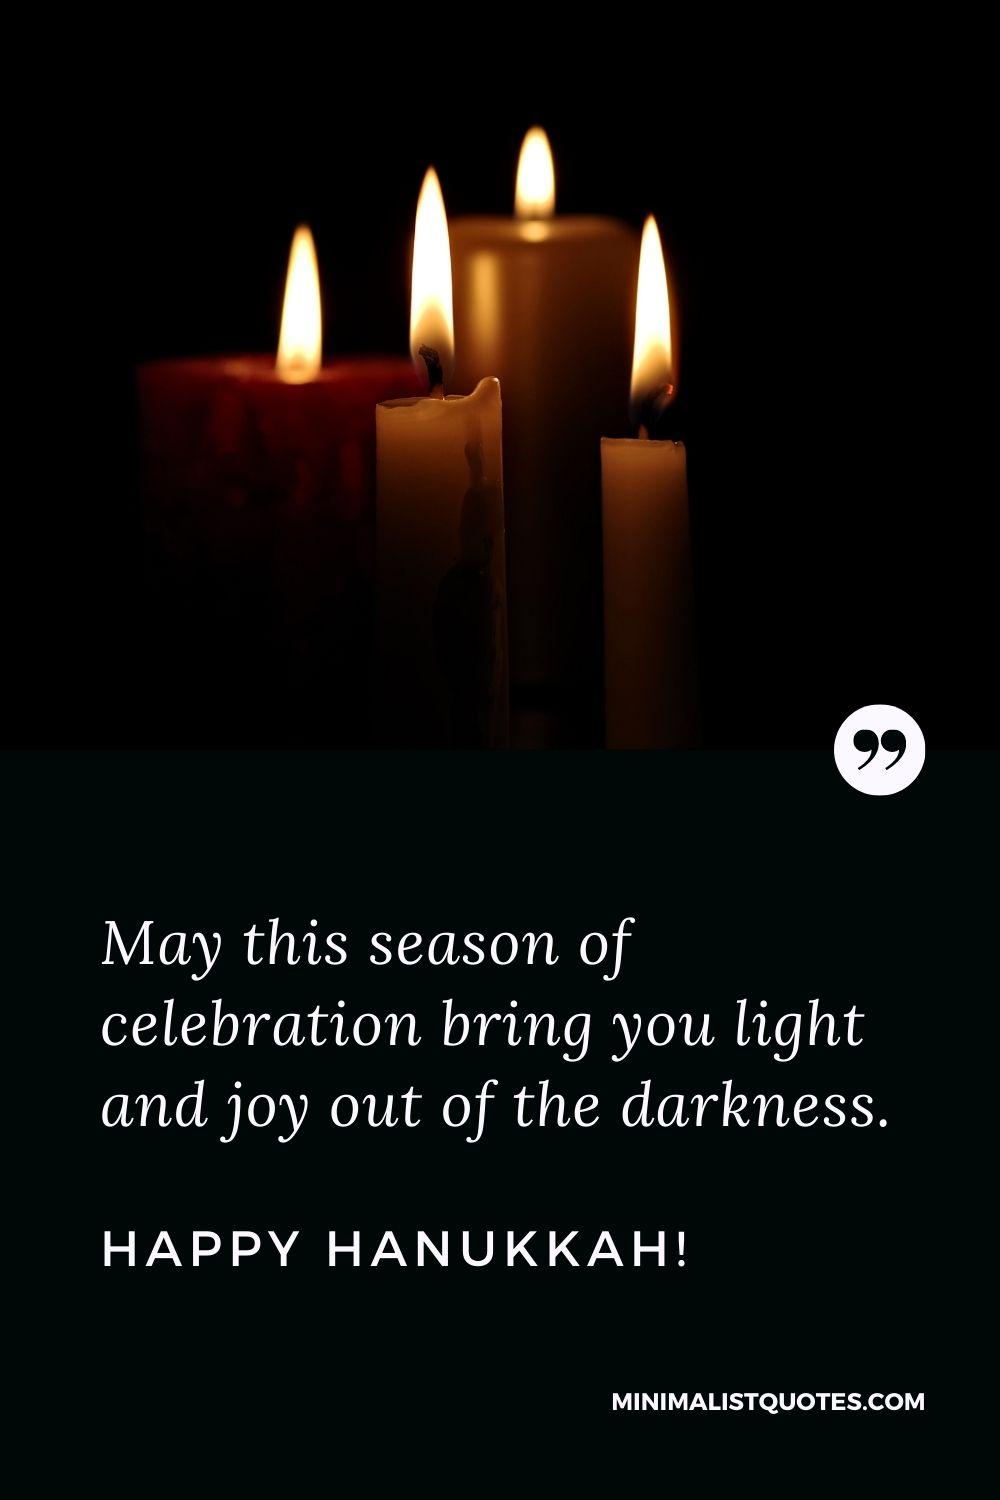 Hanukkah Quote, Wish & Message With Image: May this season of celebration bring you light and joy out of the darkness. Happy Hanukkah!